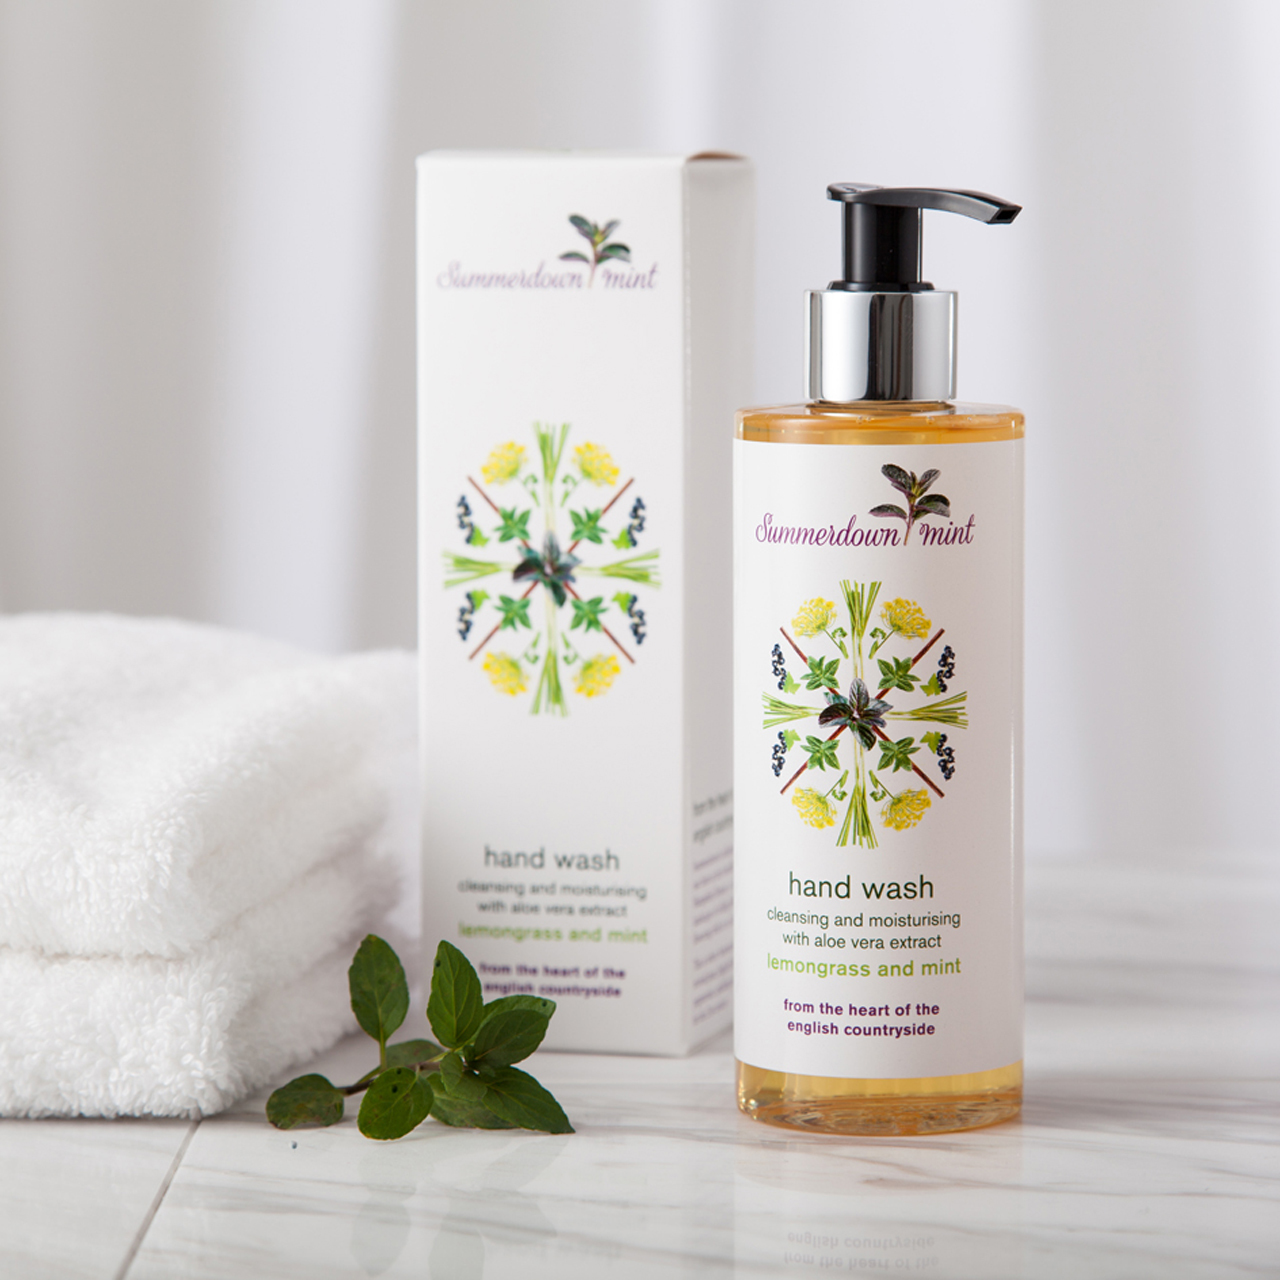 Luxury Hand Wash - Lemongrass & Mint by Summerdown Mint